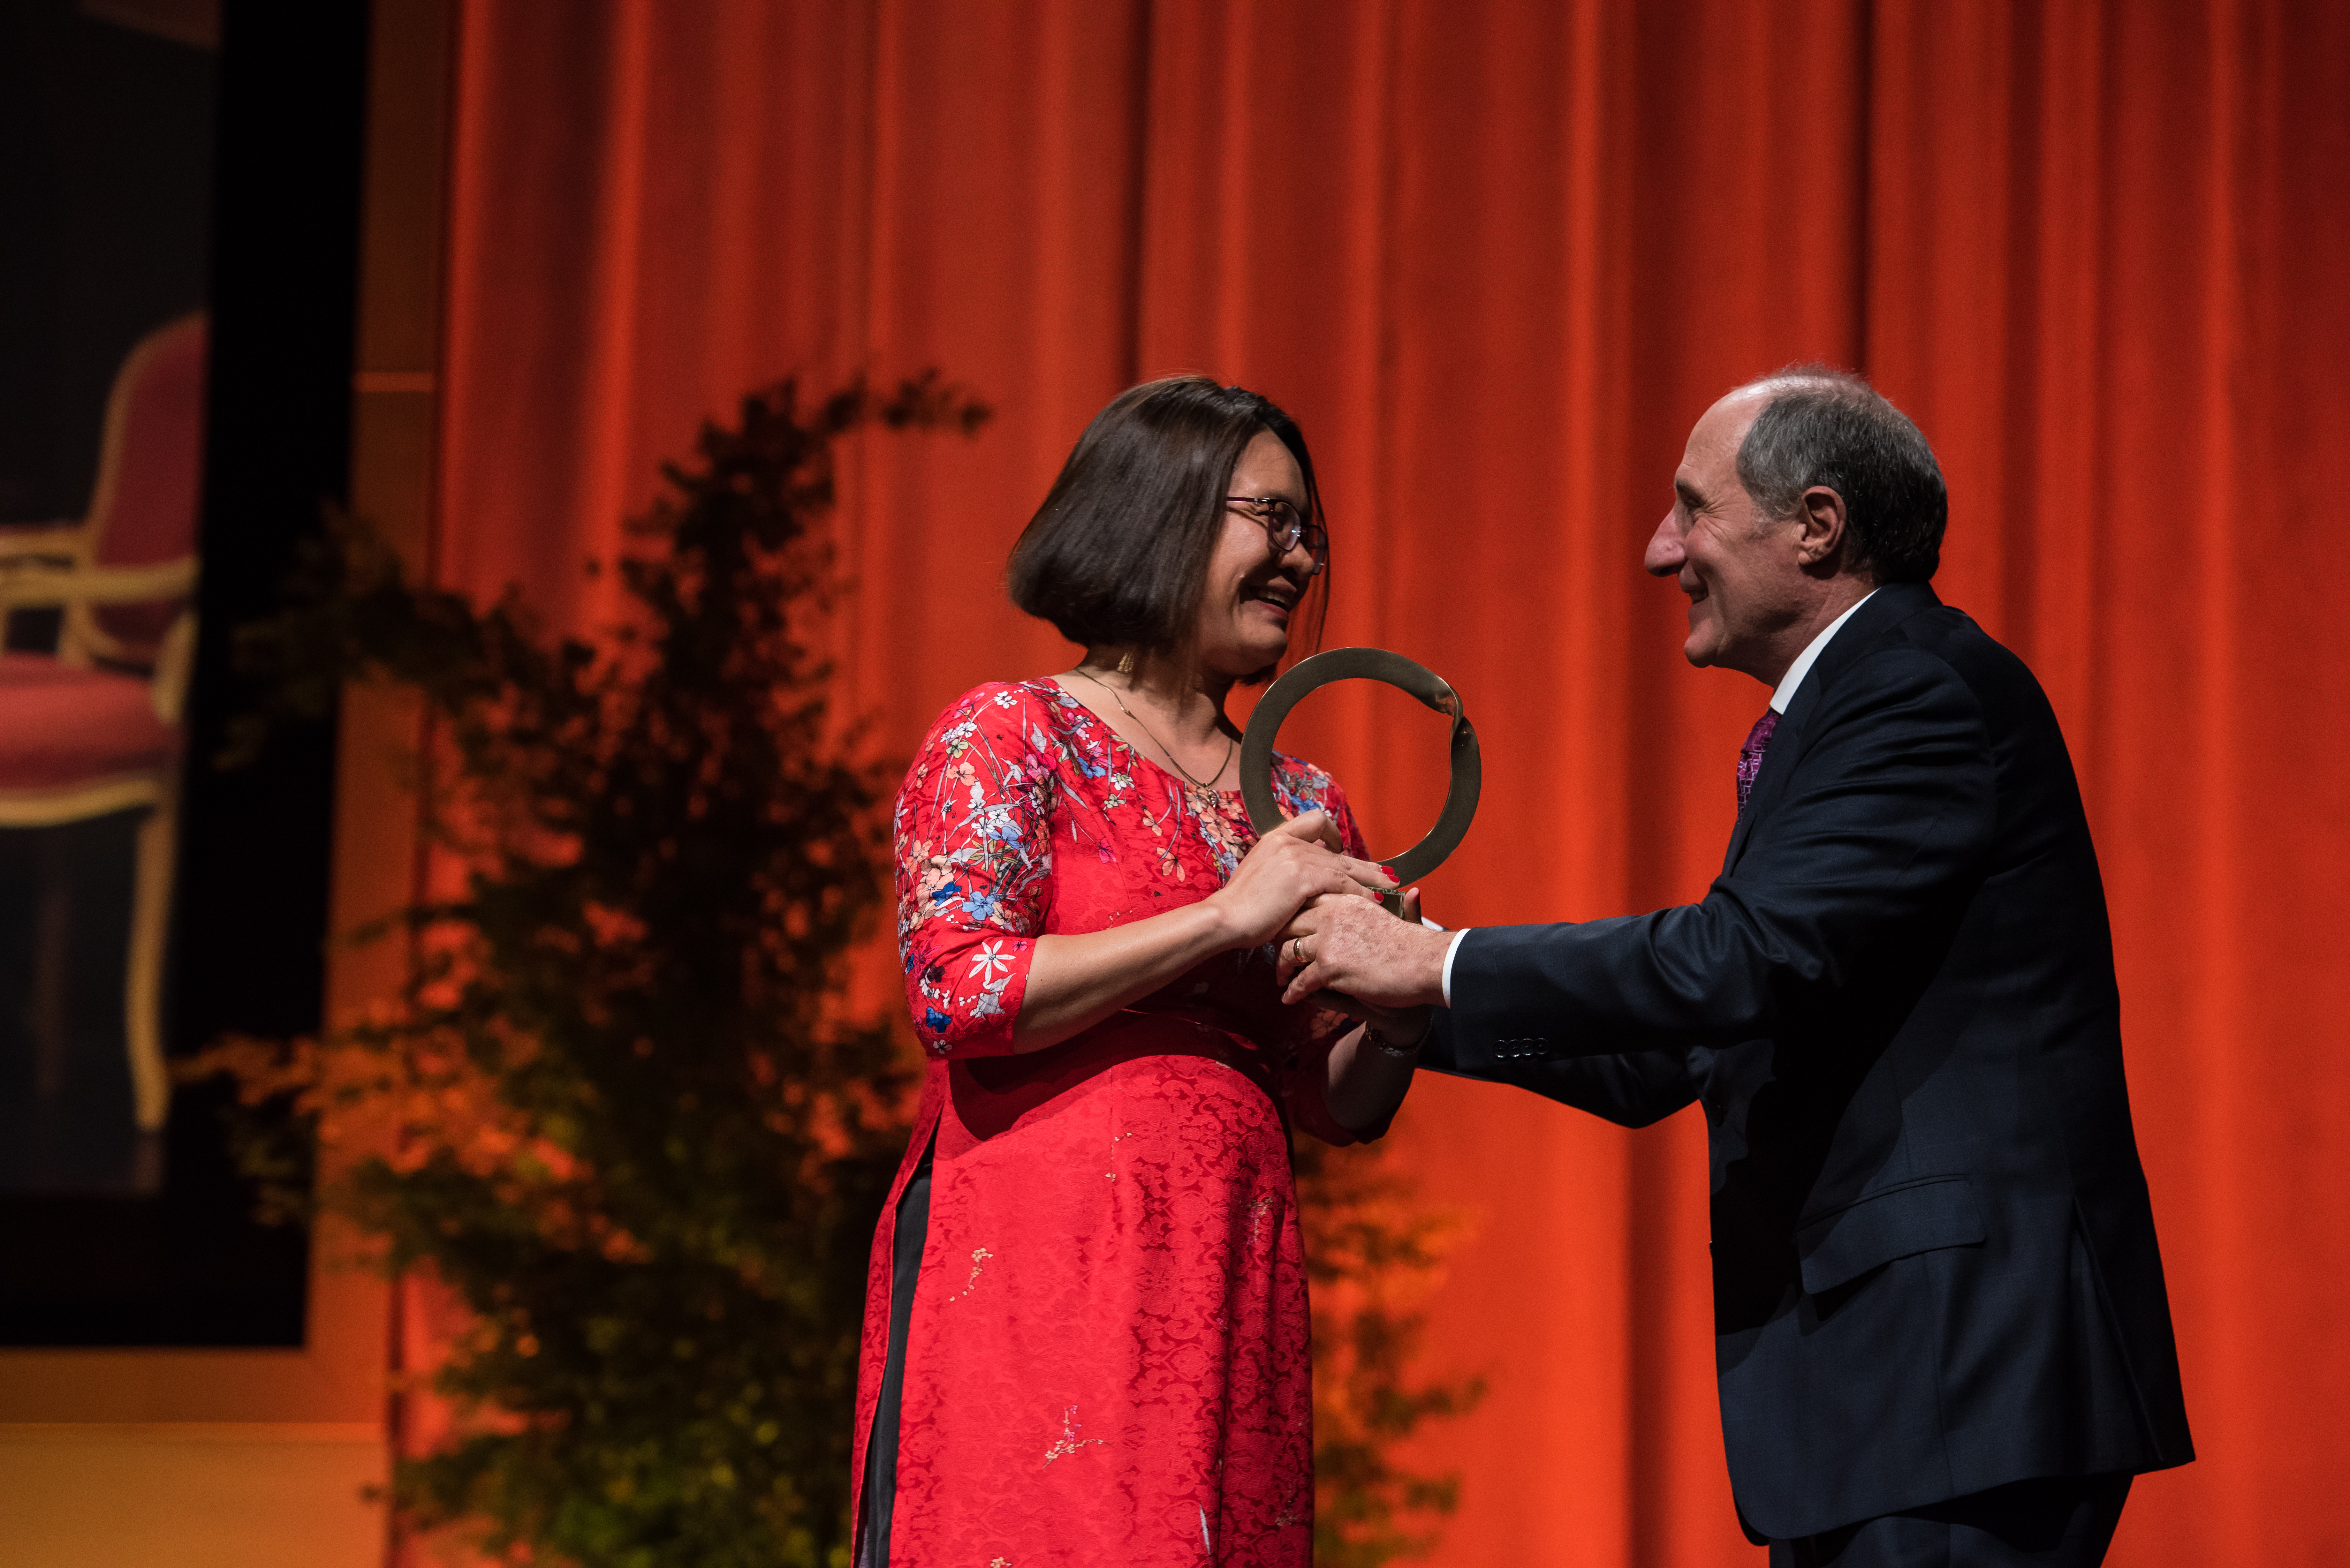 Nguyen Thi Khanh, Executive Director of Green Innovation and Development (Green ID), received the 2018 the 2018 Goldman Environmental Prize.